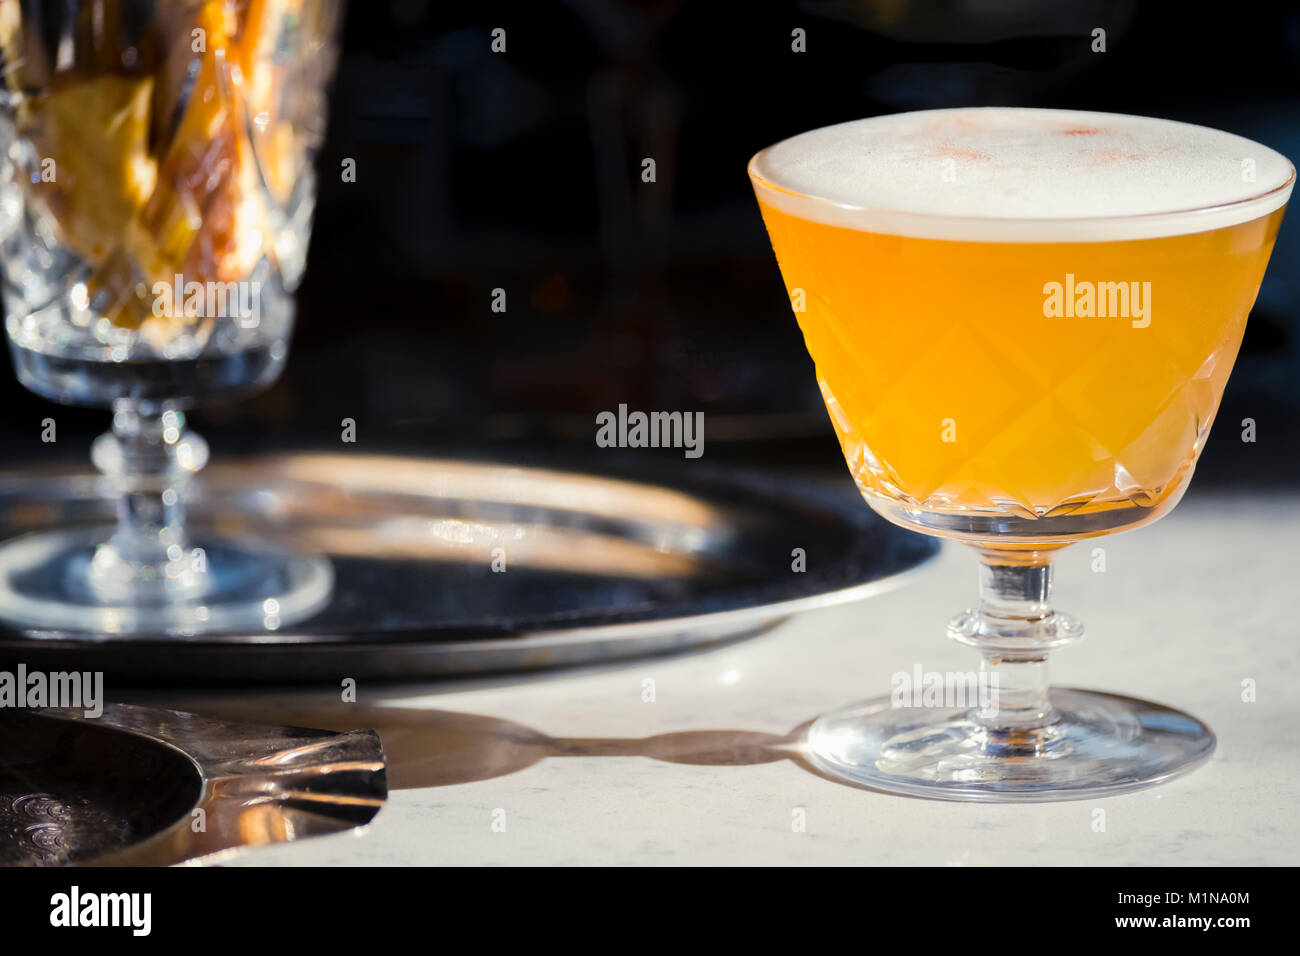 Gin & Tonic cocktail with foam garnish in a cut glass cocktail glass. - Stock Image